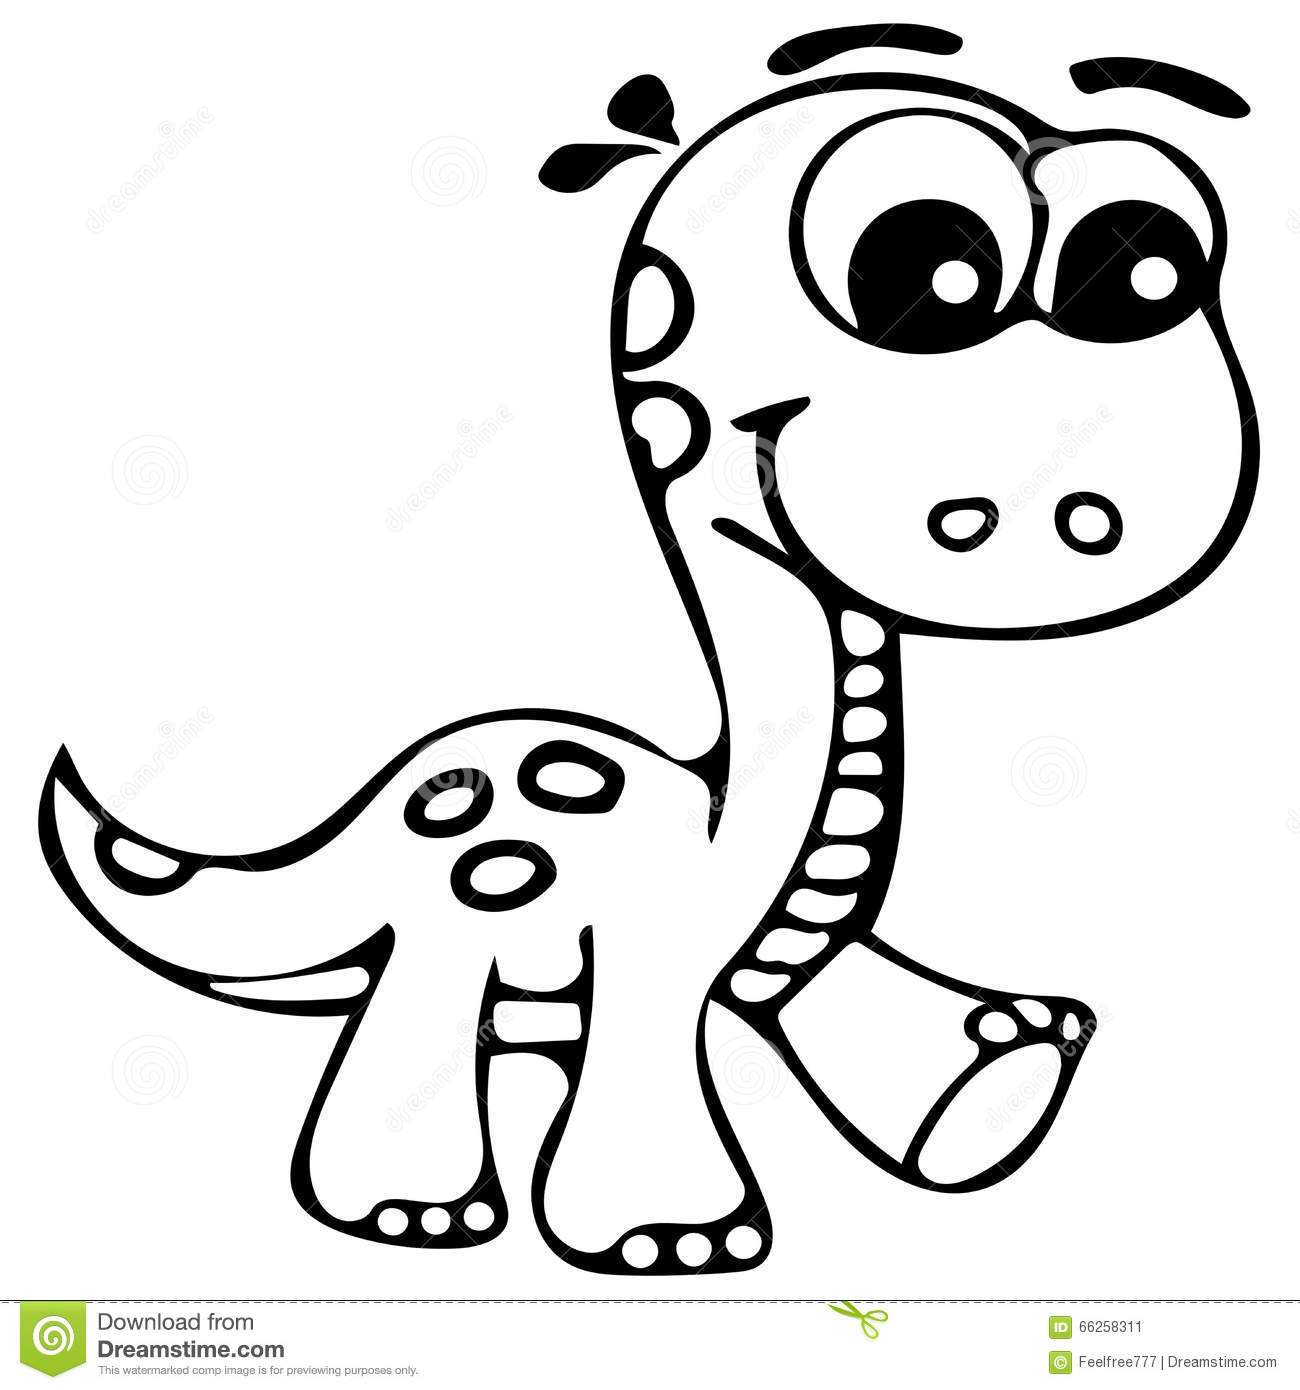 1300x1390 Best Cute Dinosaur Coloring Pages For Kids Printable Simple